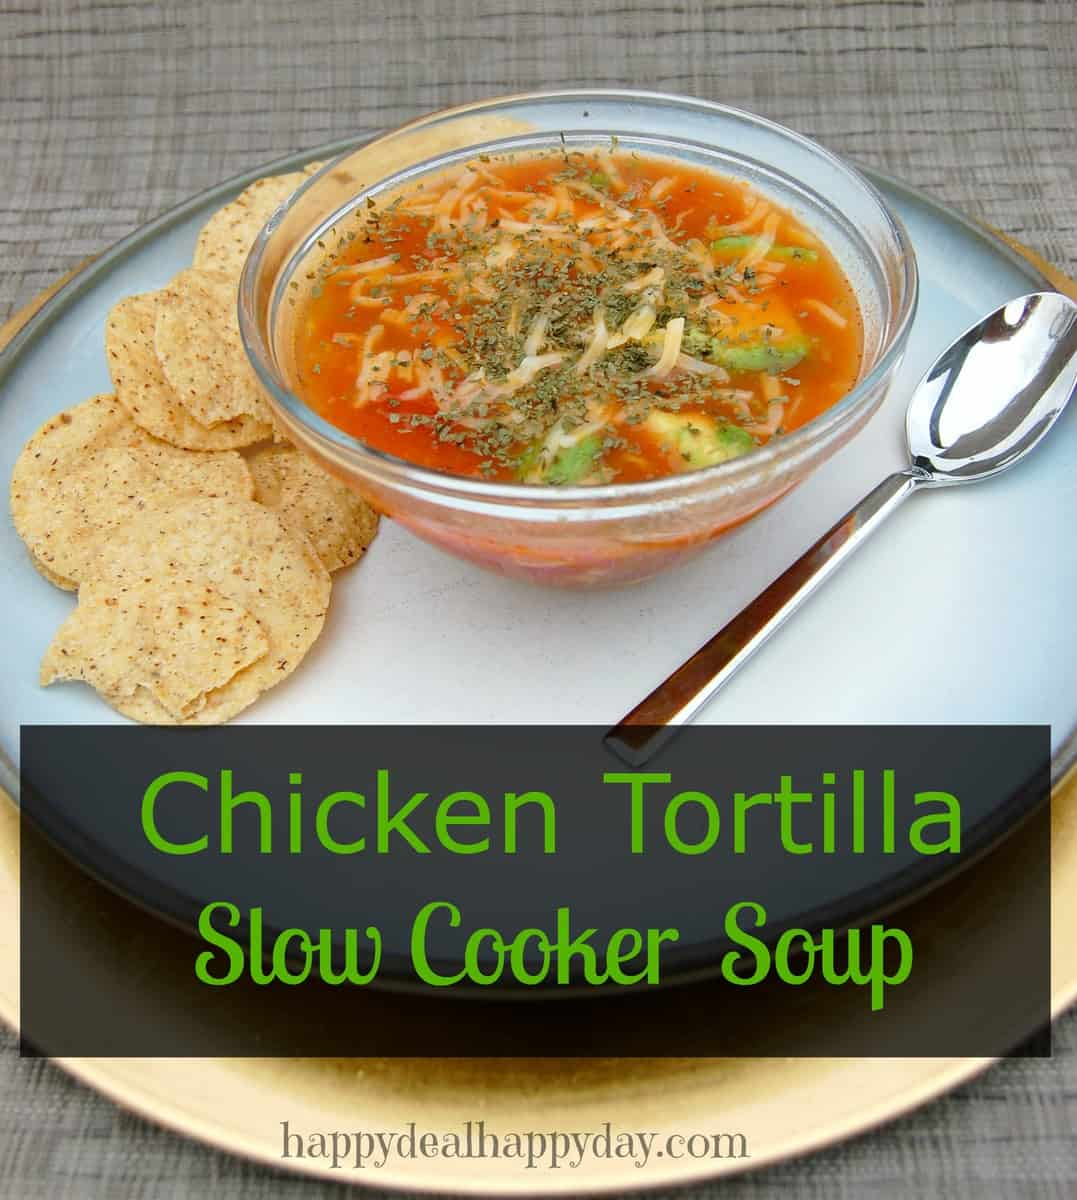 Healthier Slow Cooker Chicken Tortilla Soup Recipe